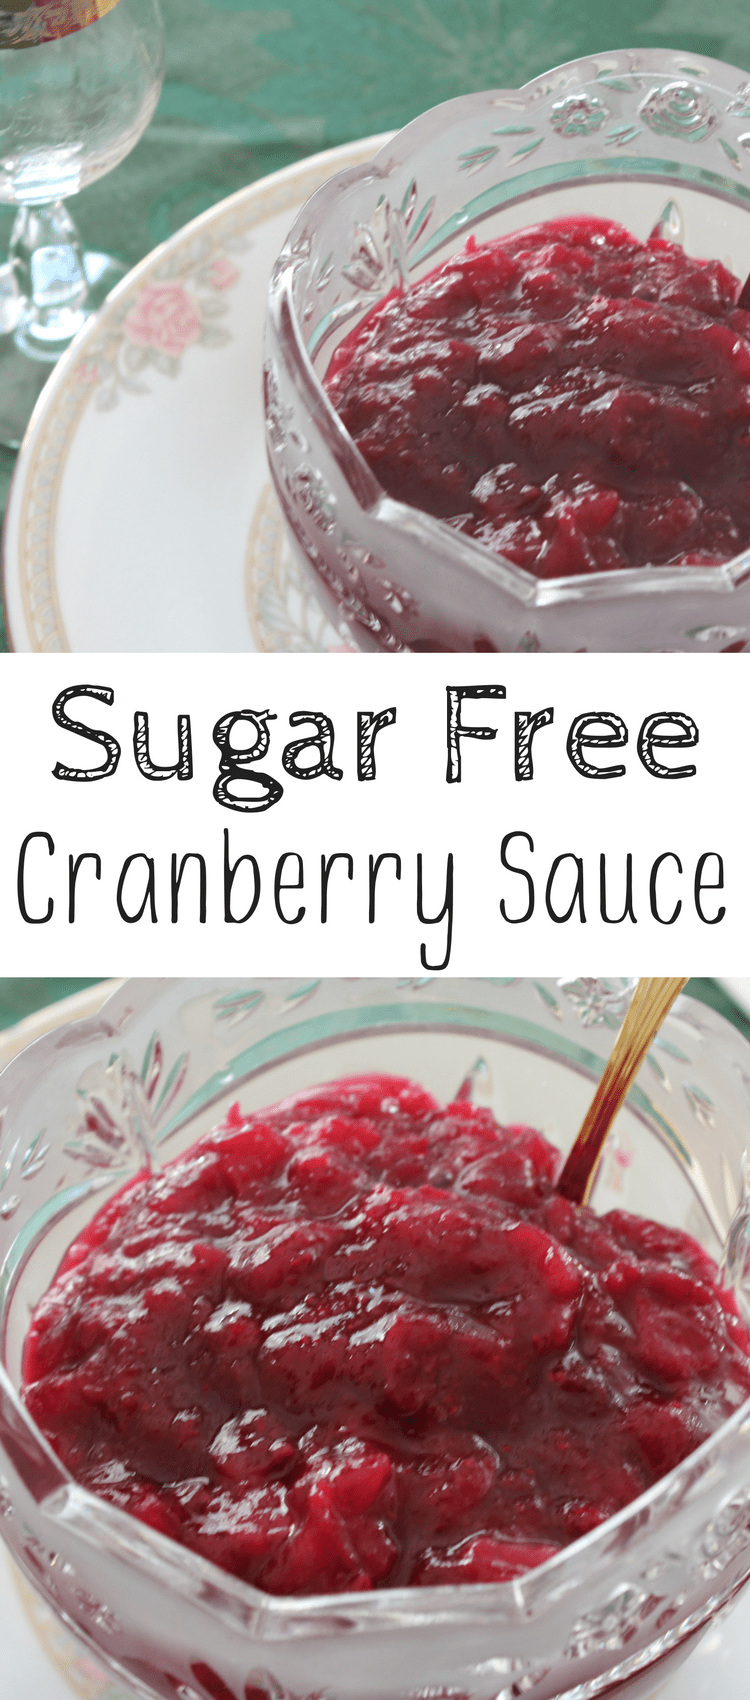 Cranberry sauce is always on the table during the holidays.  Though the traditional stuff has sugar in it, this sugar free cranberry sauce is sure to wow all of your guests.  And bonus- it's so easy!